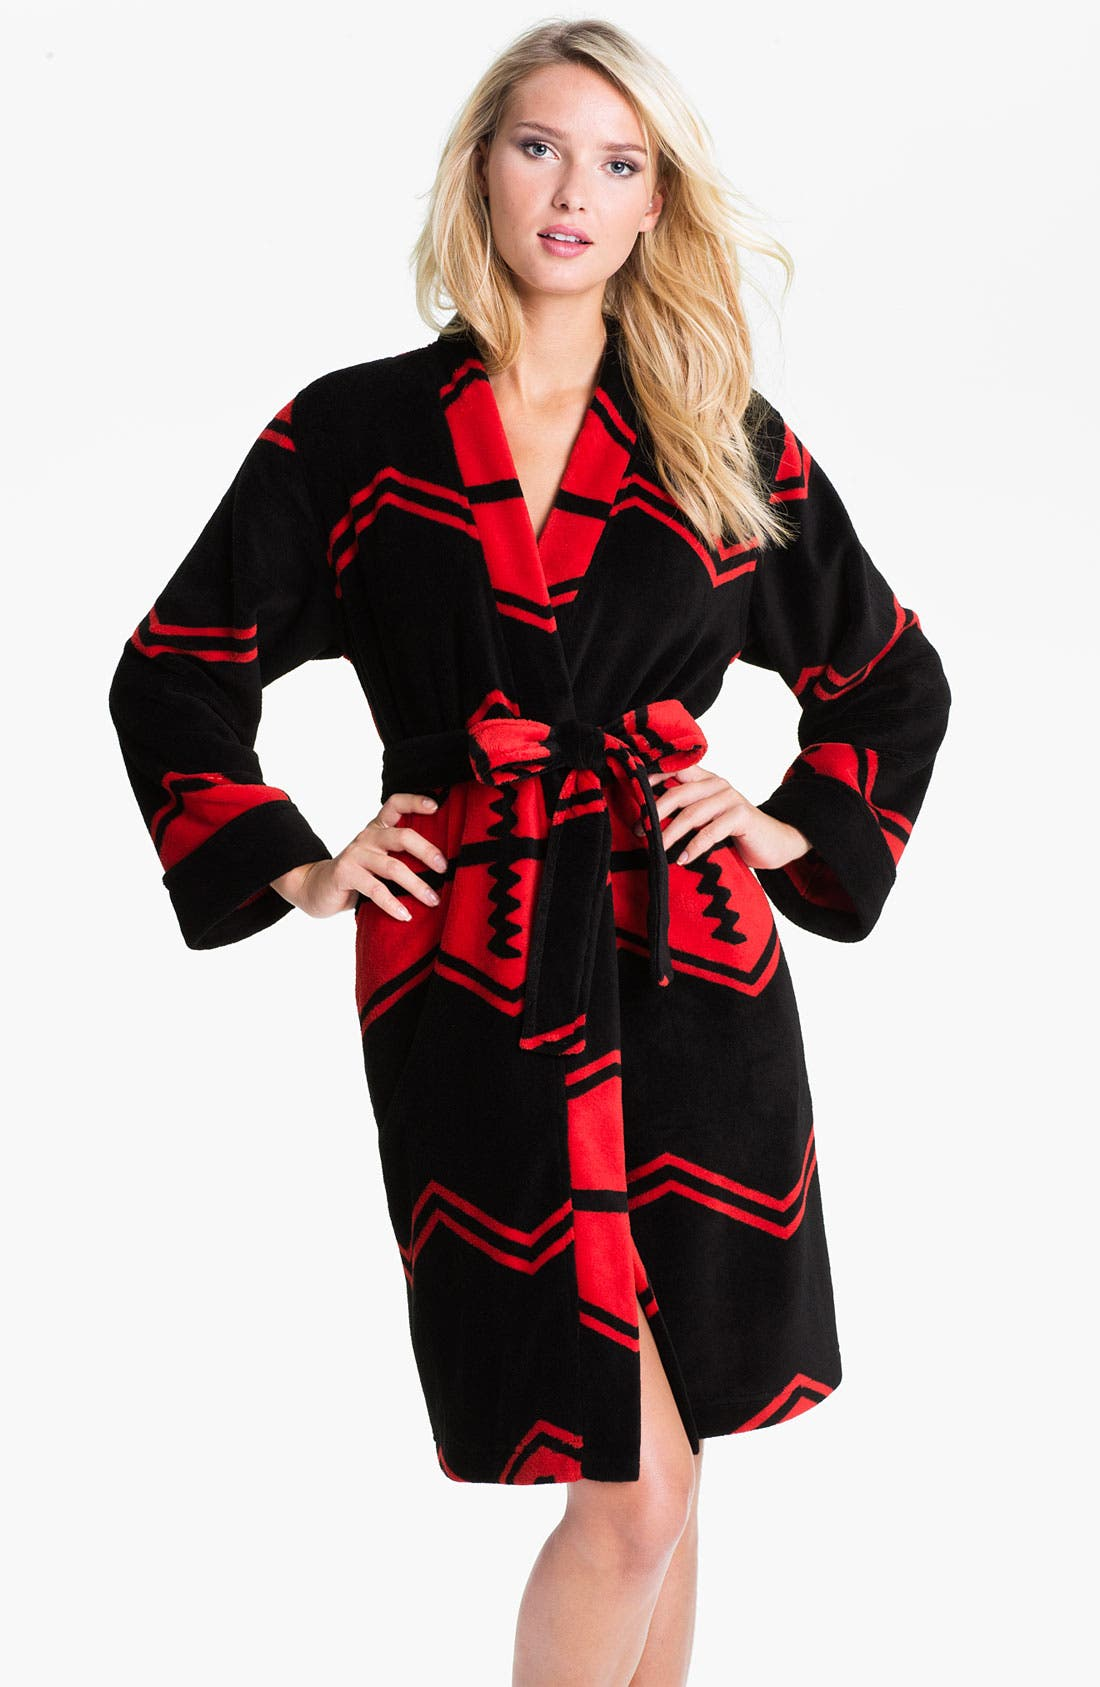 Alternate Image 1 Selected - Lauren Ralph Lauren Sleepwear Zigzag Stripe Plush Robe